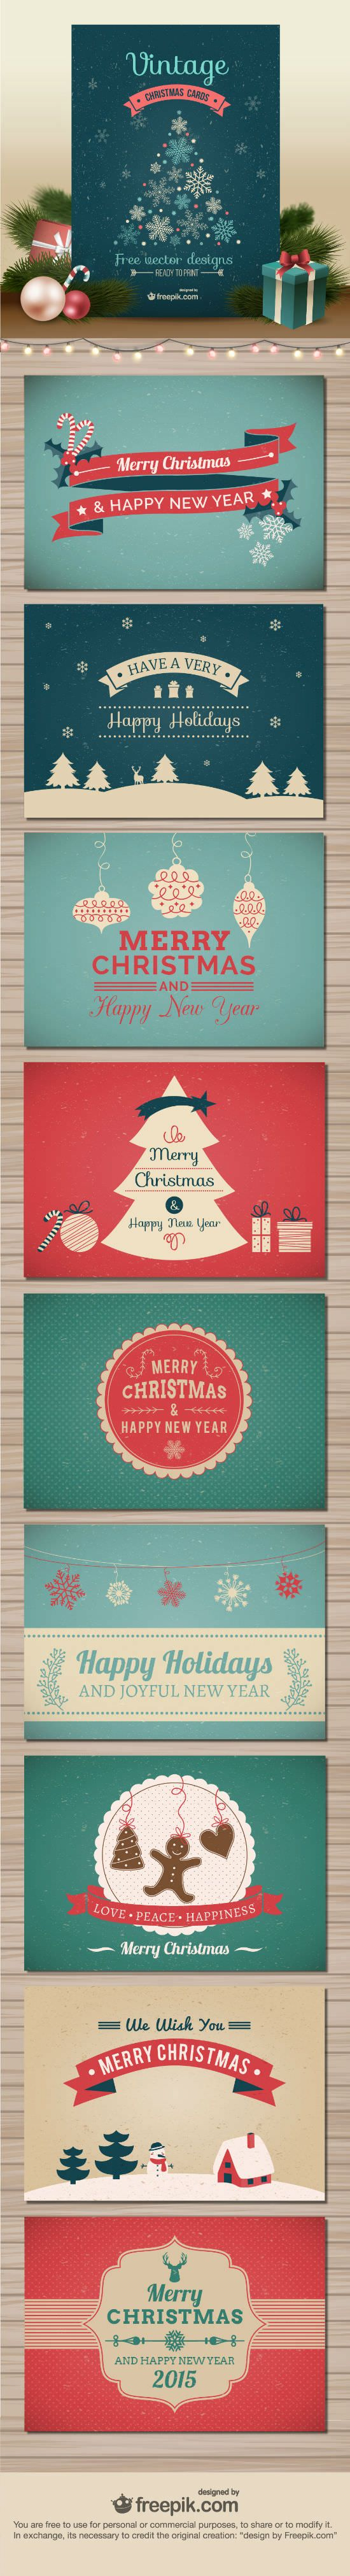 10 Free Vector Christmas Cards Created by Freepik; Exclusively Available Here                                                                                                                                                                                 More